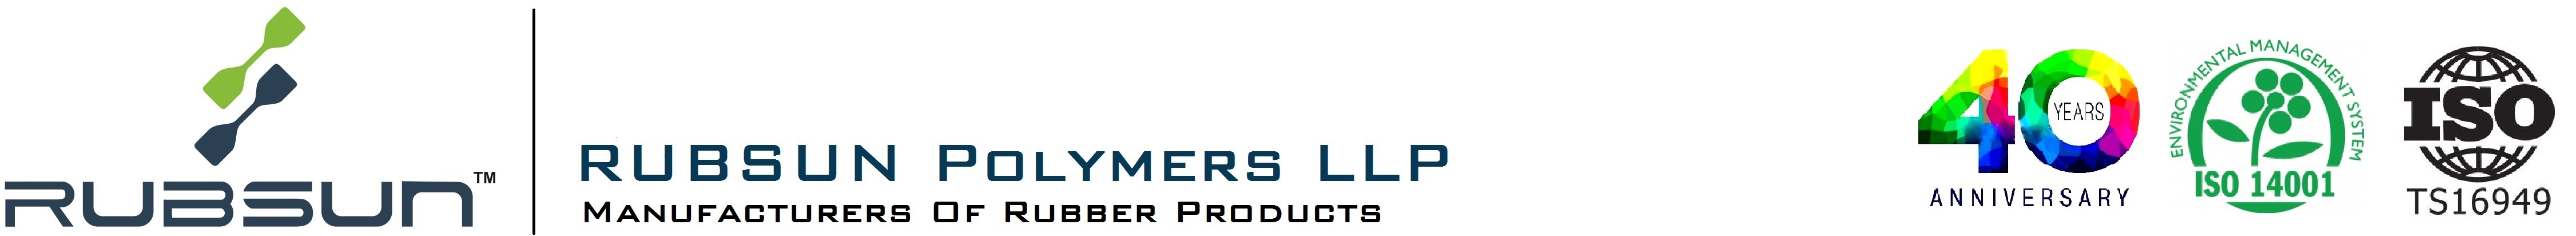 Rubsun Polymers LLP - Manufacturers of Rubber Products